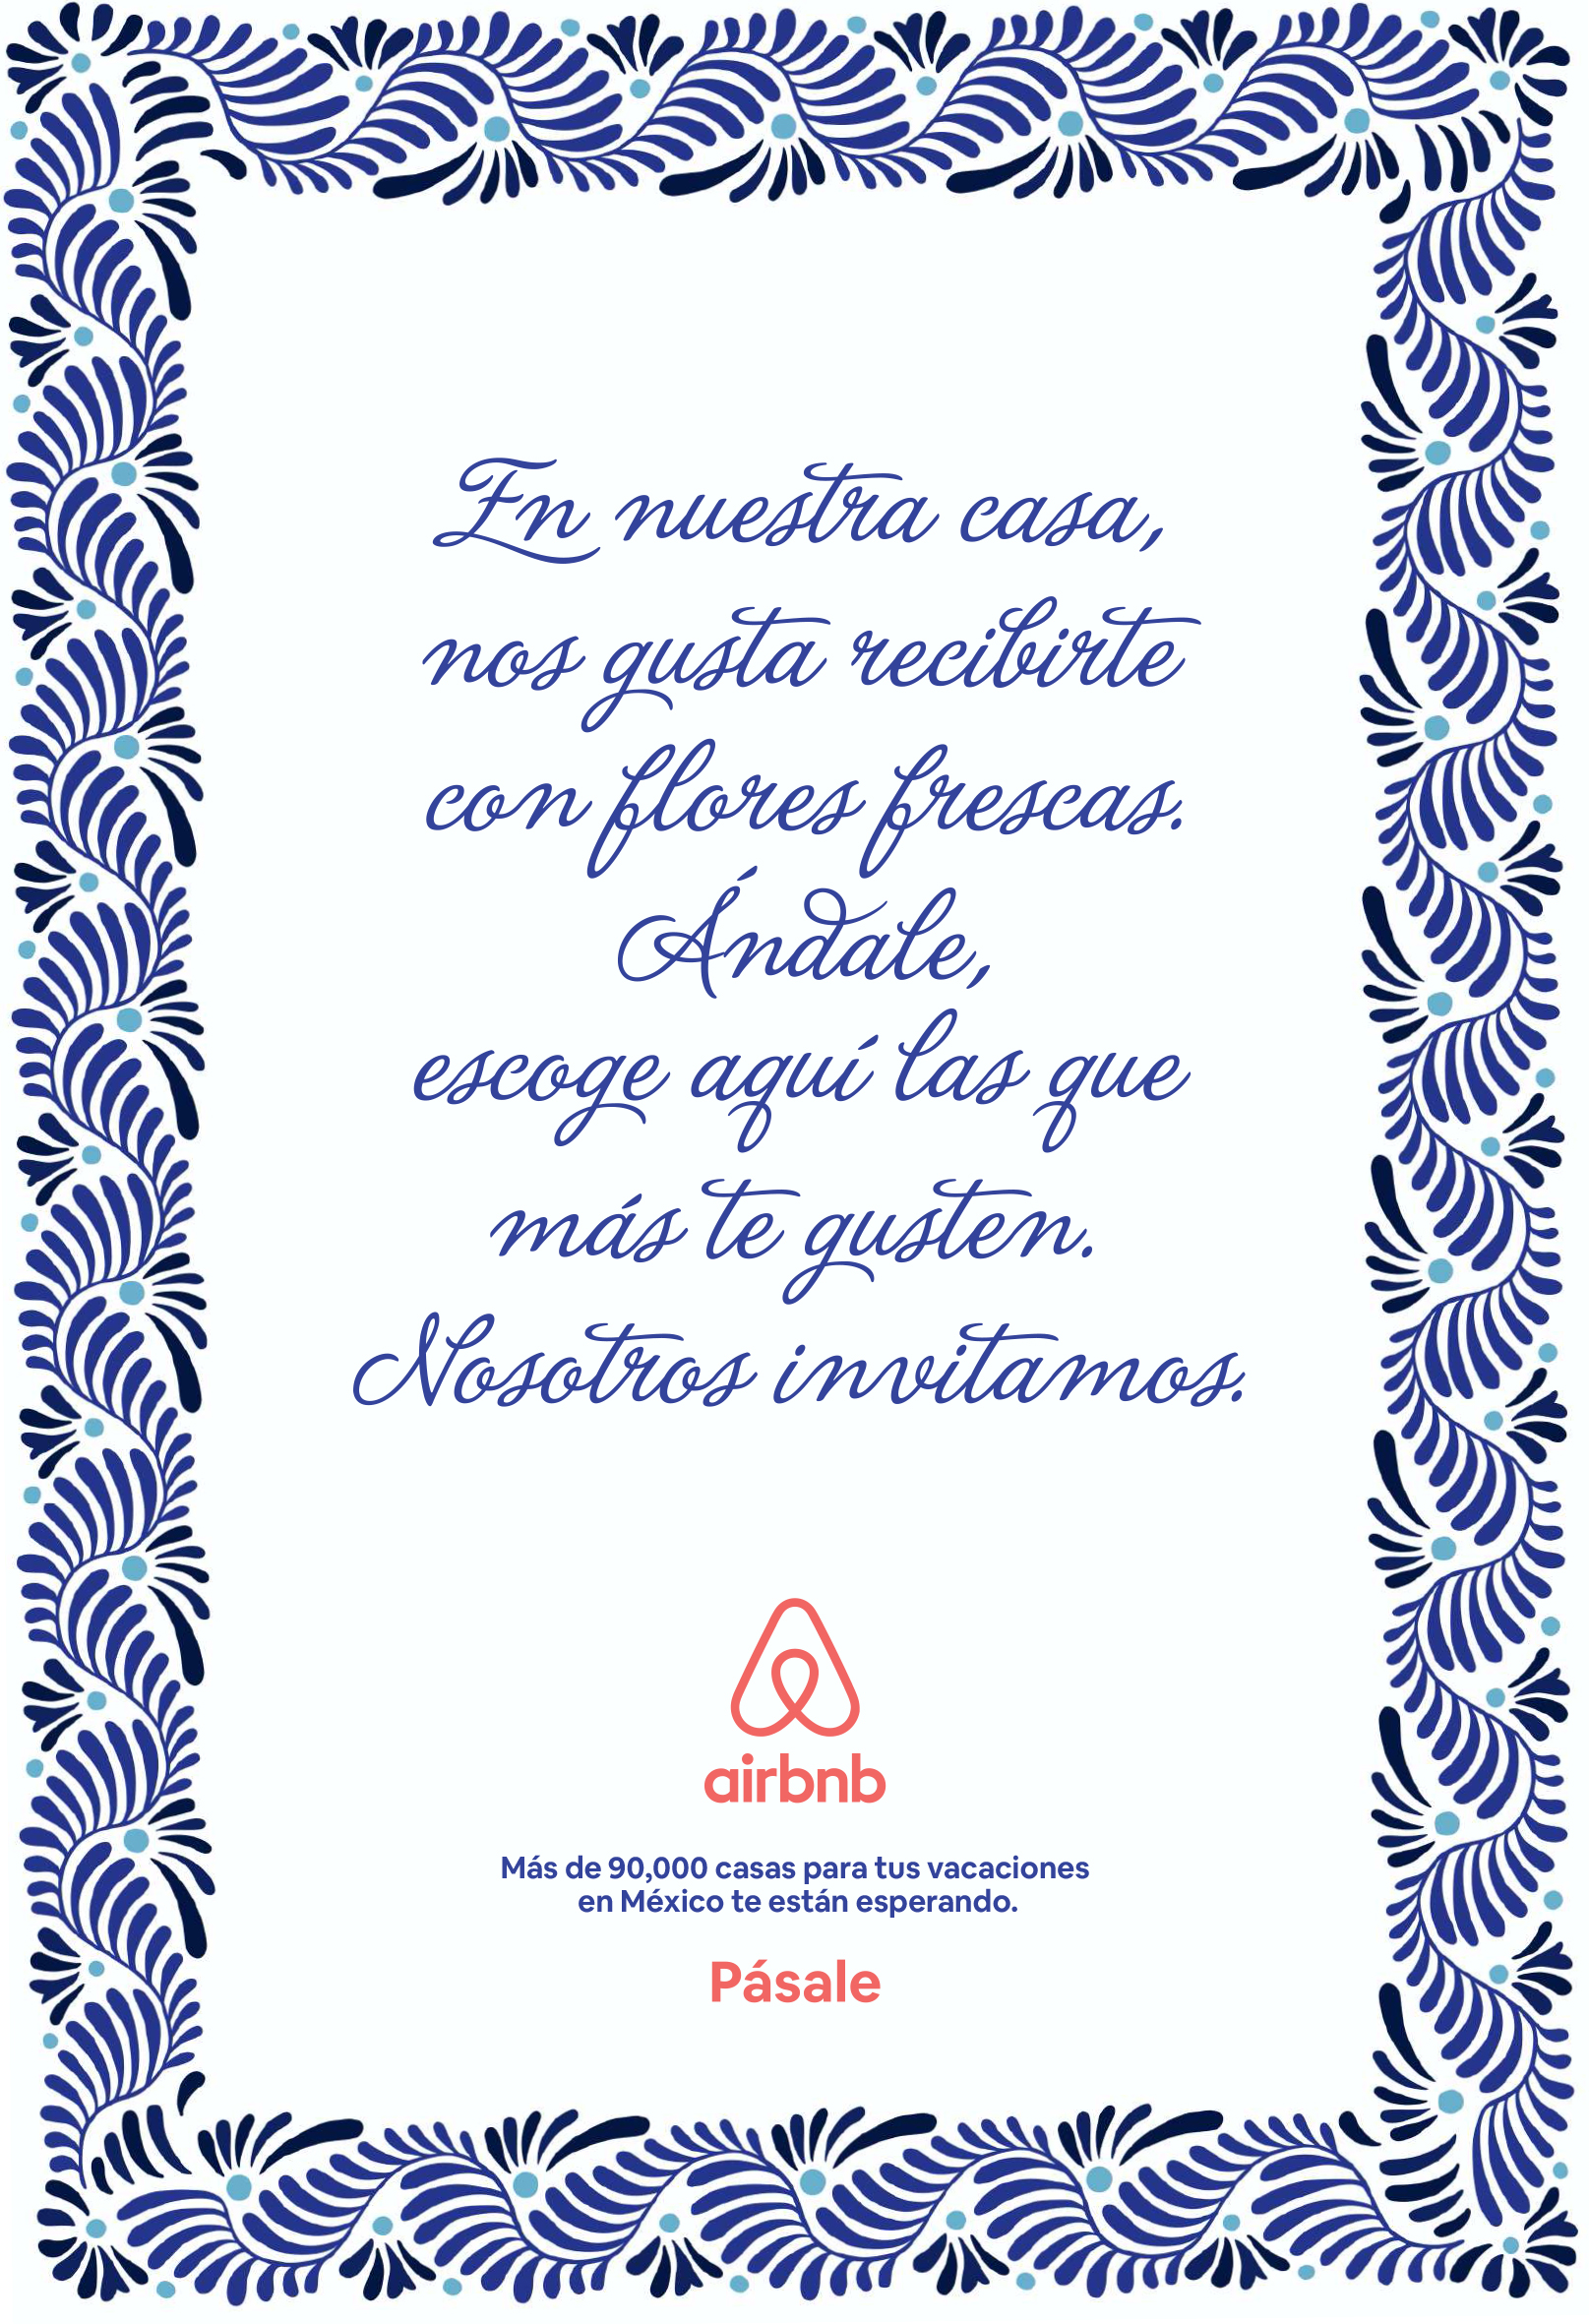 Translation: In our homes, we like to welcome you with fresh flowers. Go for it, pick the ones you like. They're on us/we're inviting.